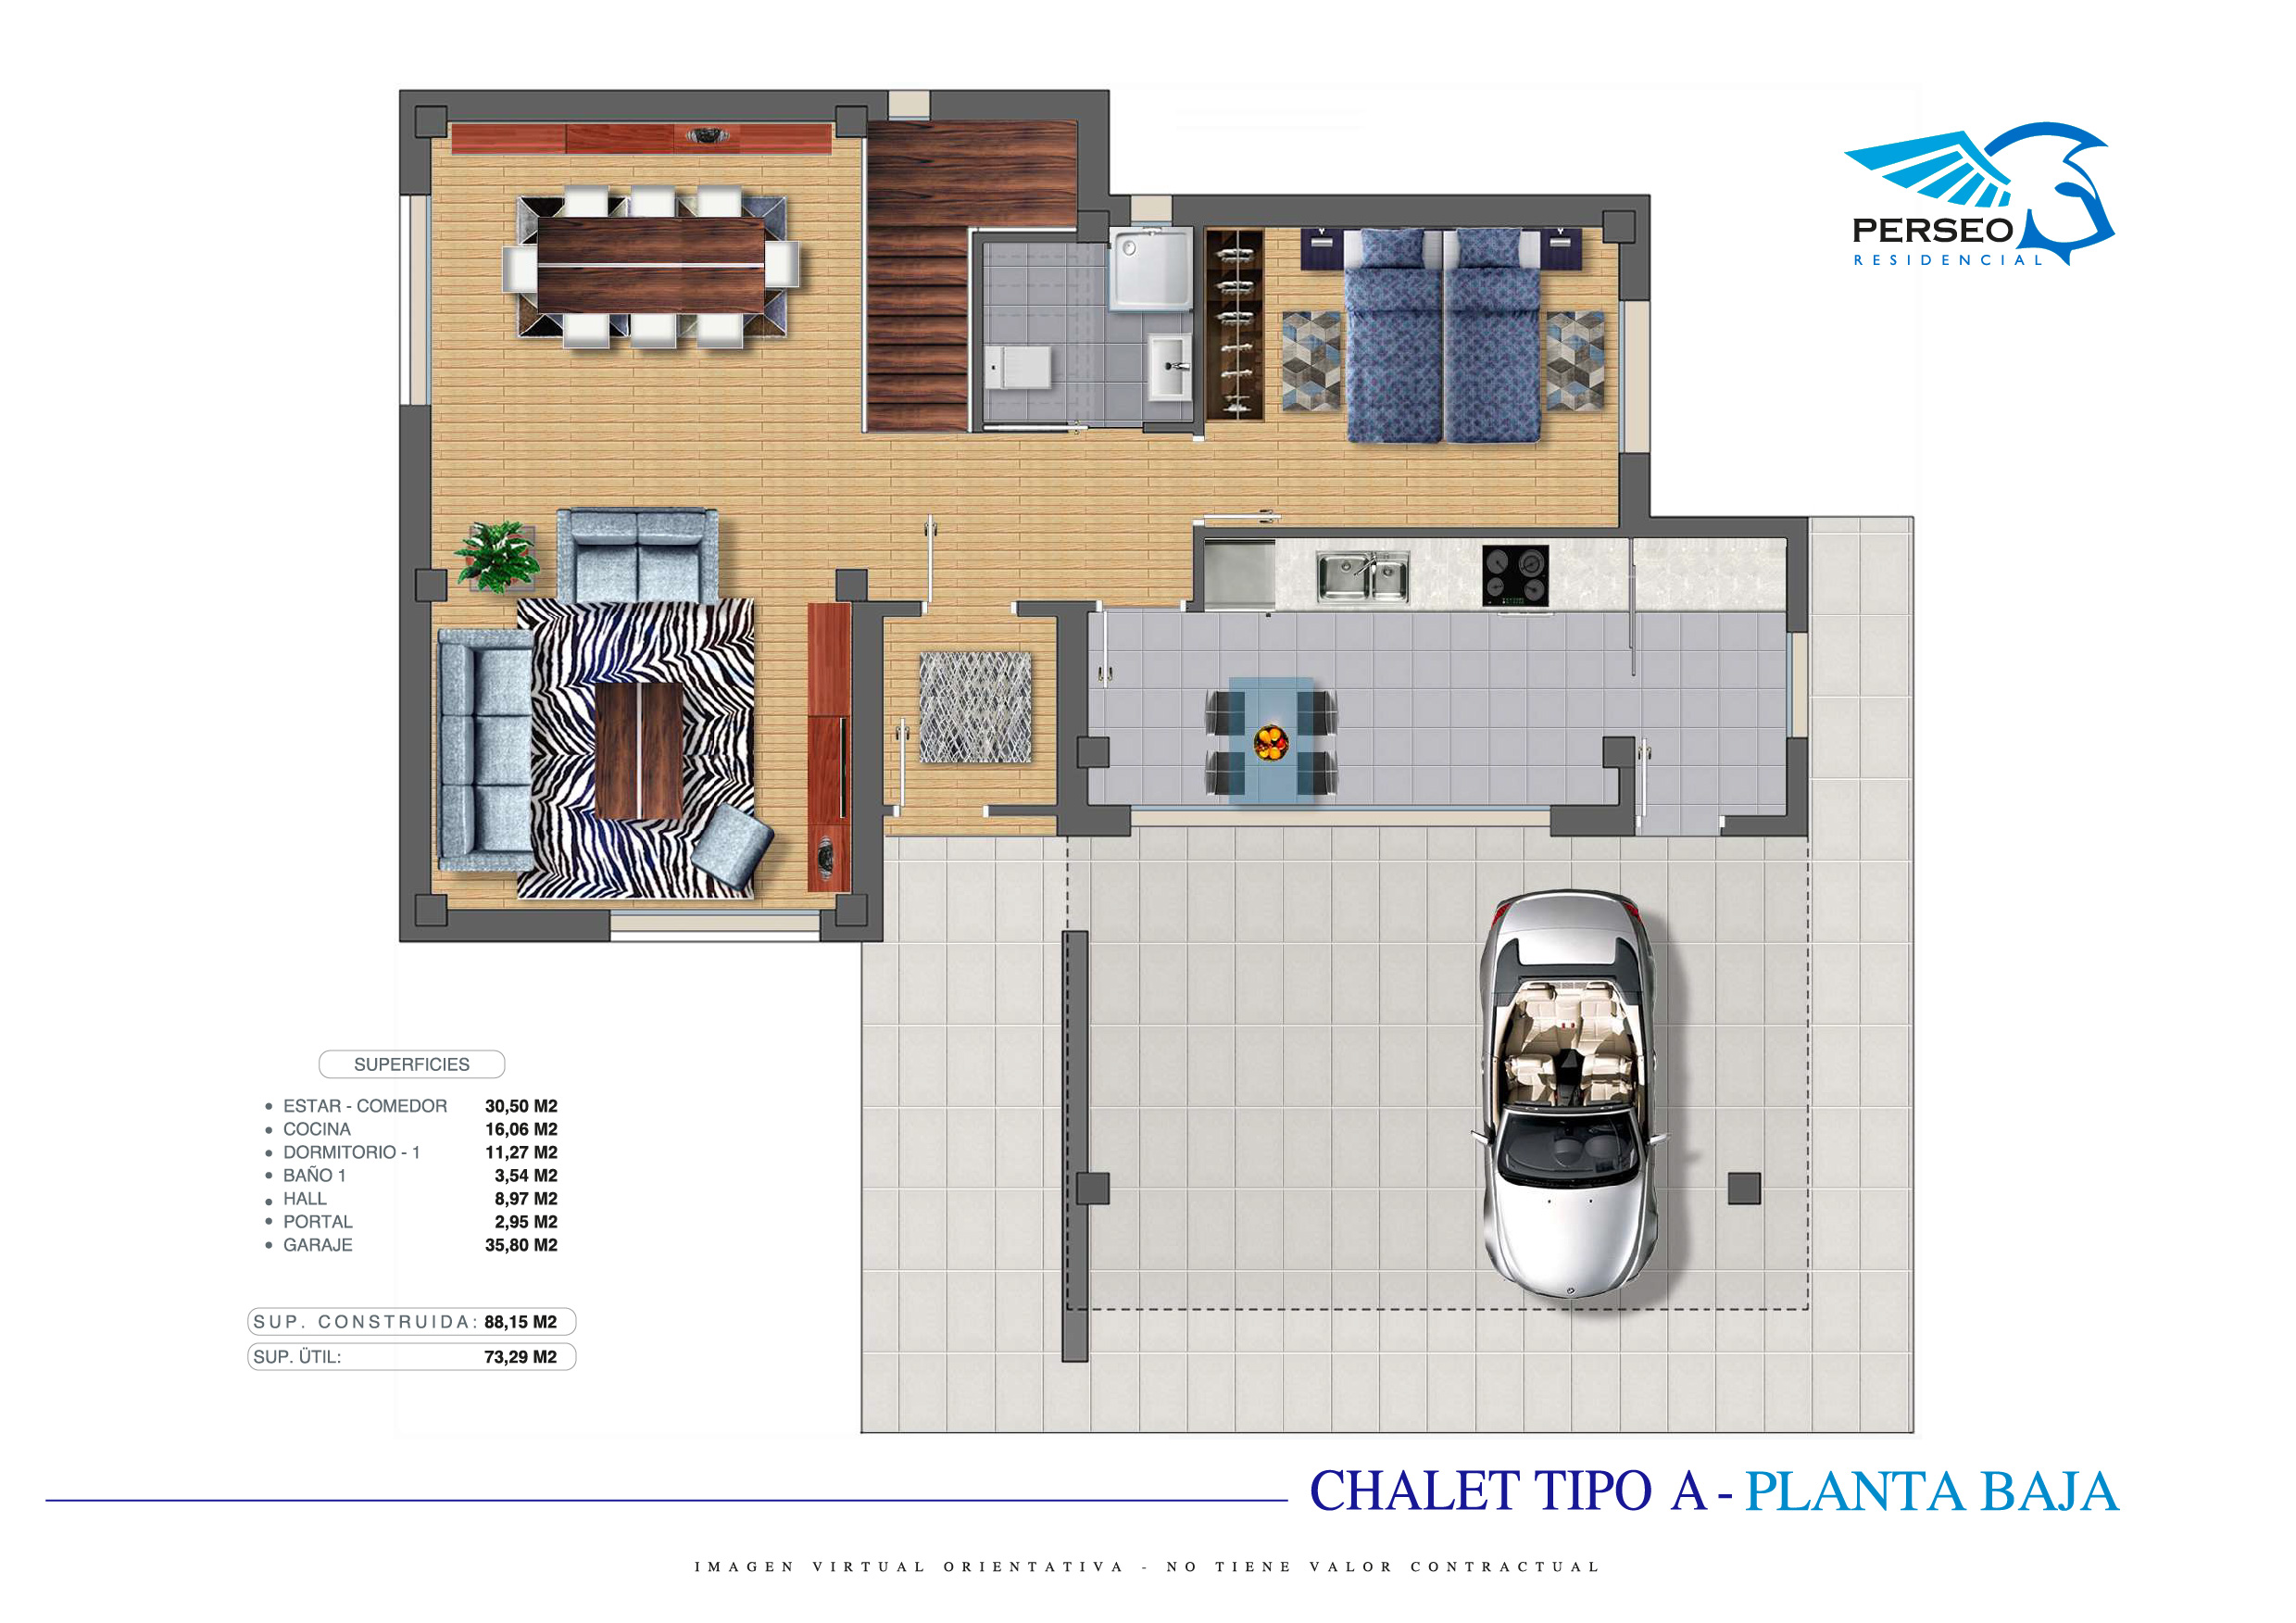 Residencial Perseo - Chalet A - PB-01